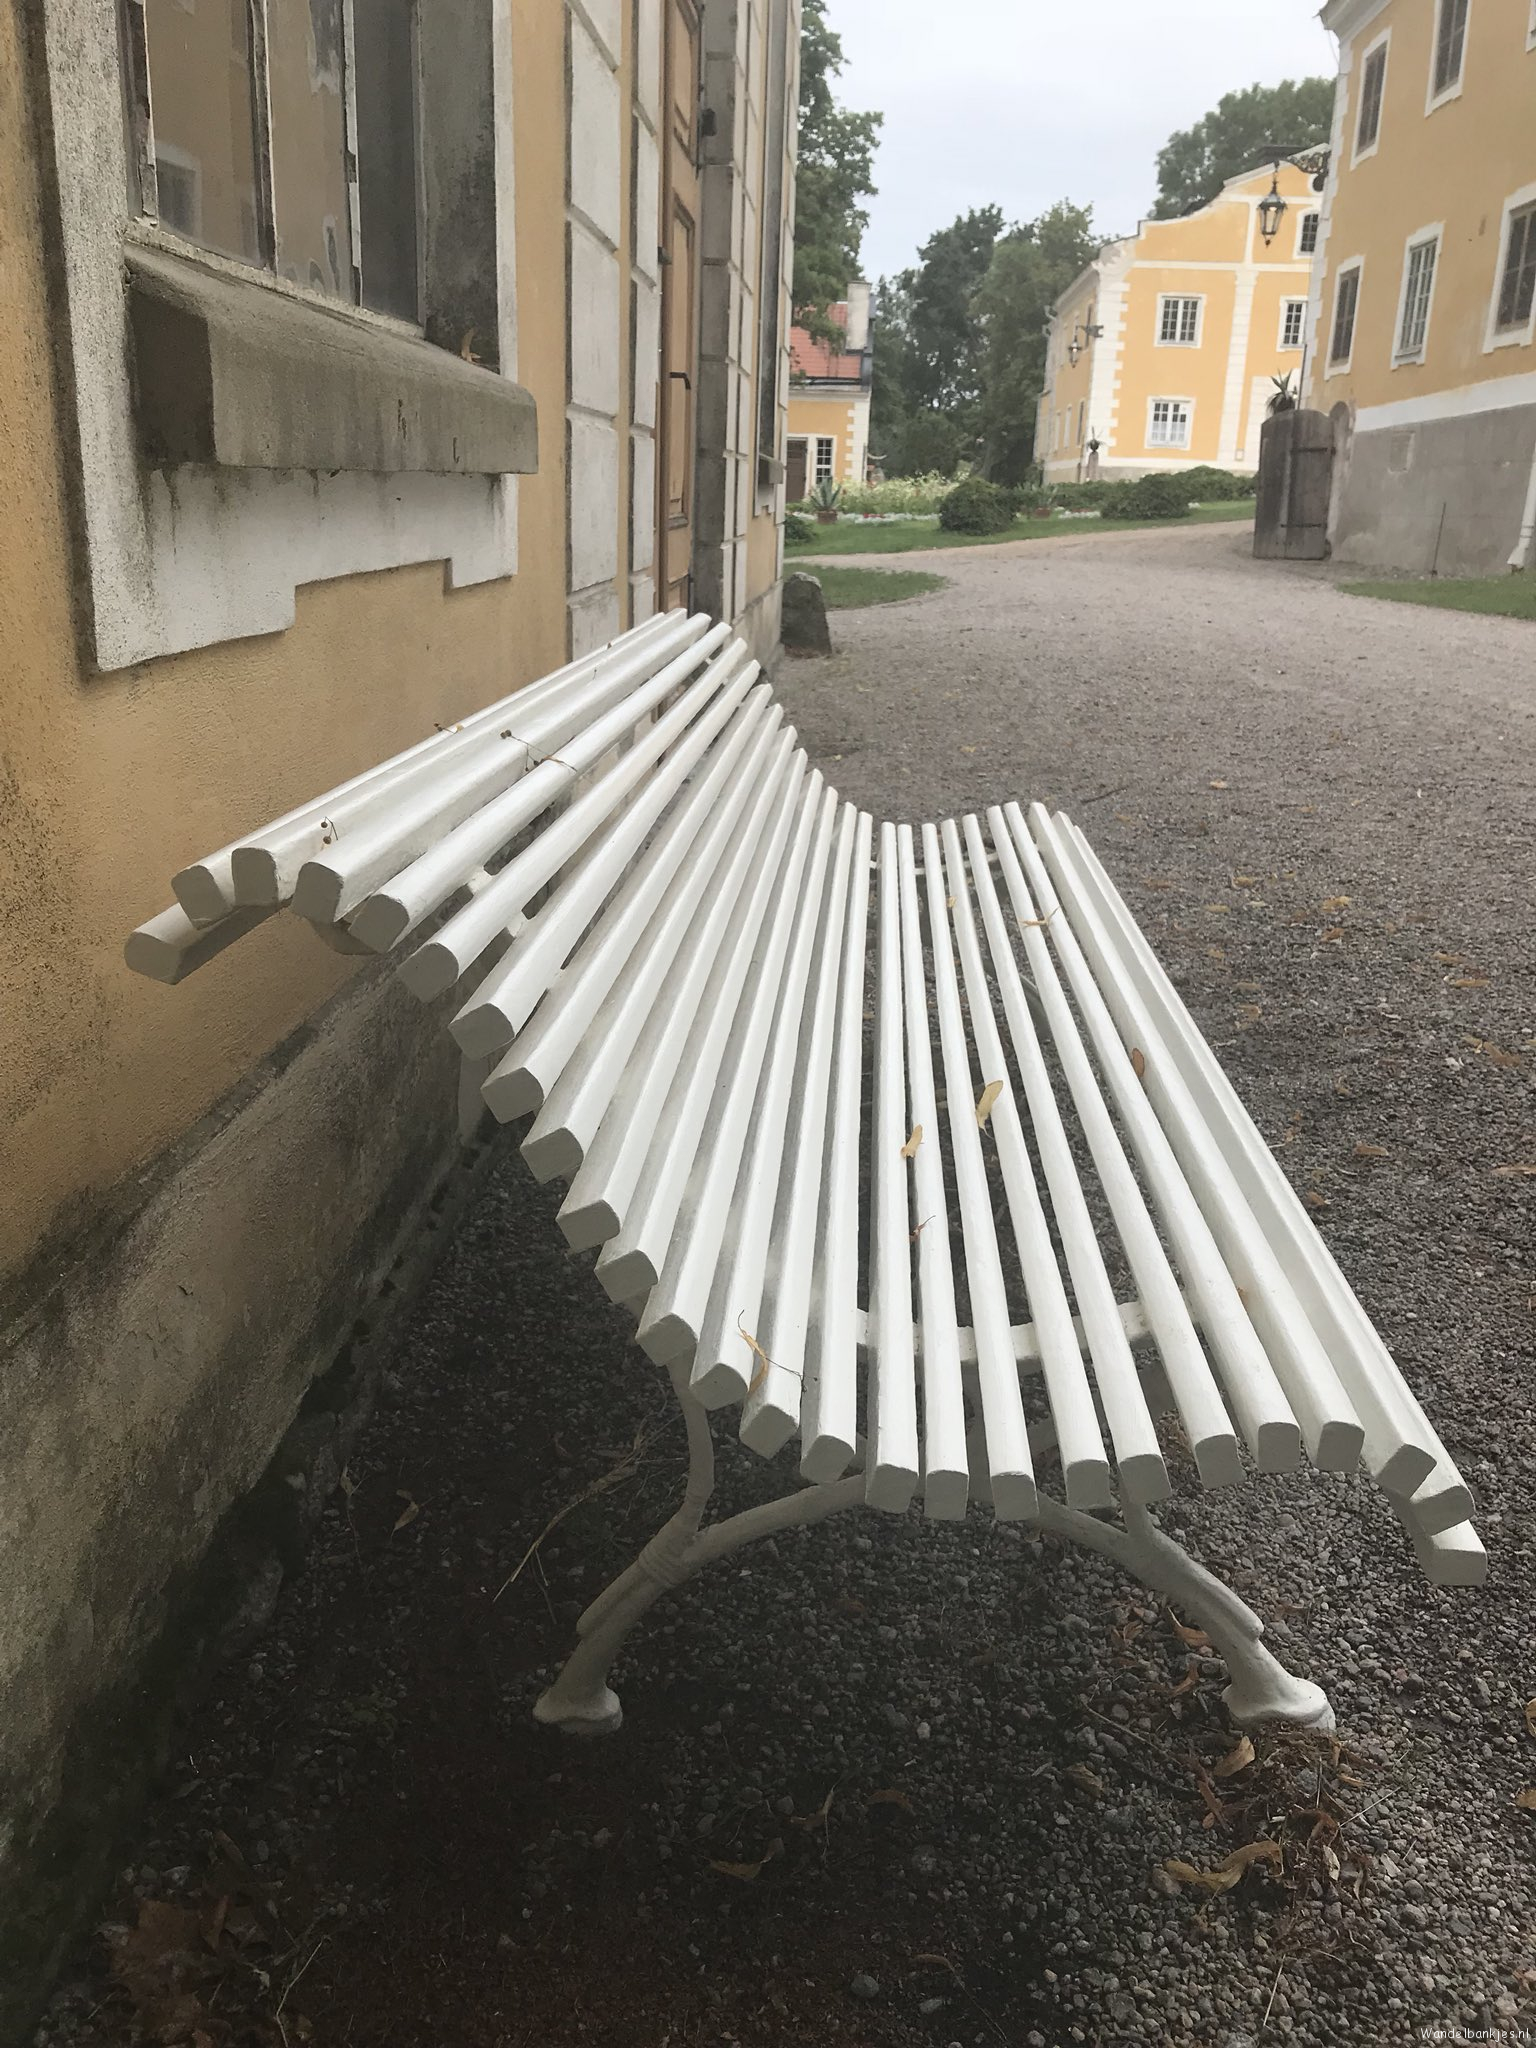 rt-dujo070-walking-benches-walkersbenches-a-walking-bench-on-estate-julias-tradgard-in-vastland-sweden-https-t-co-tu9p3td5cj